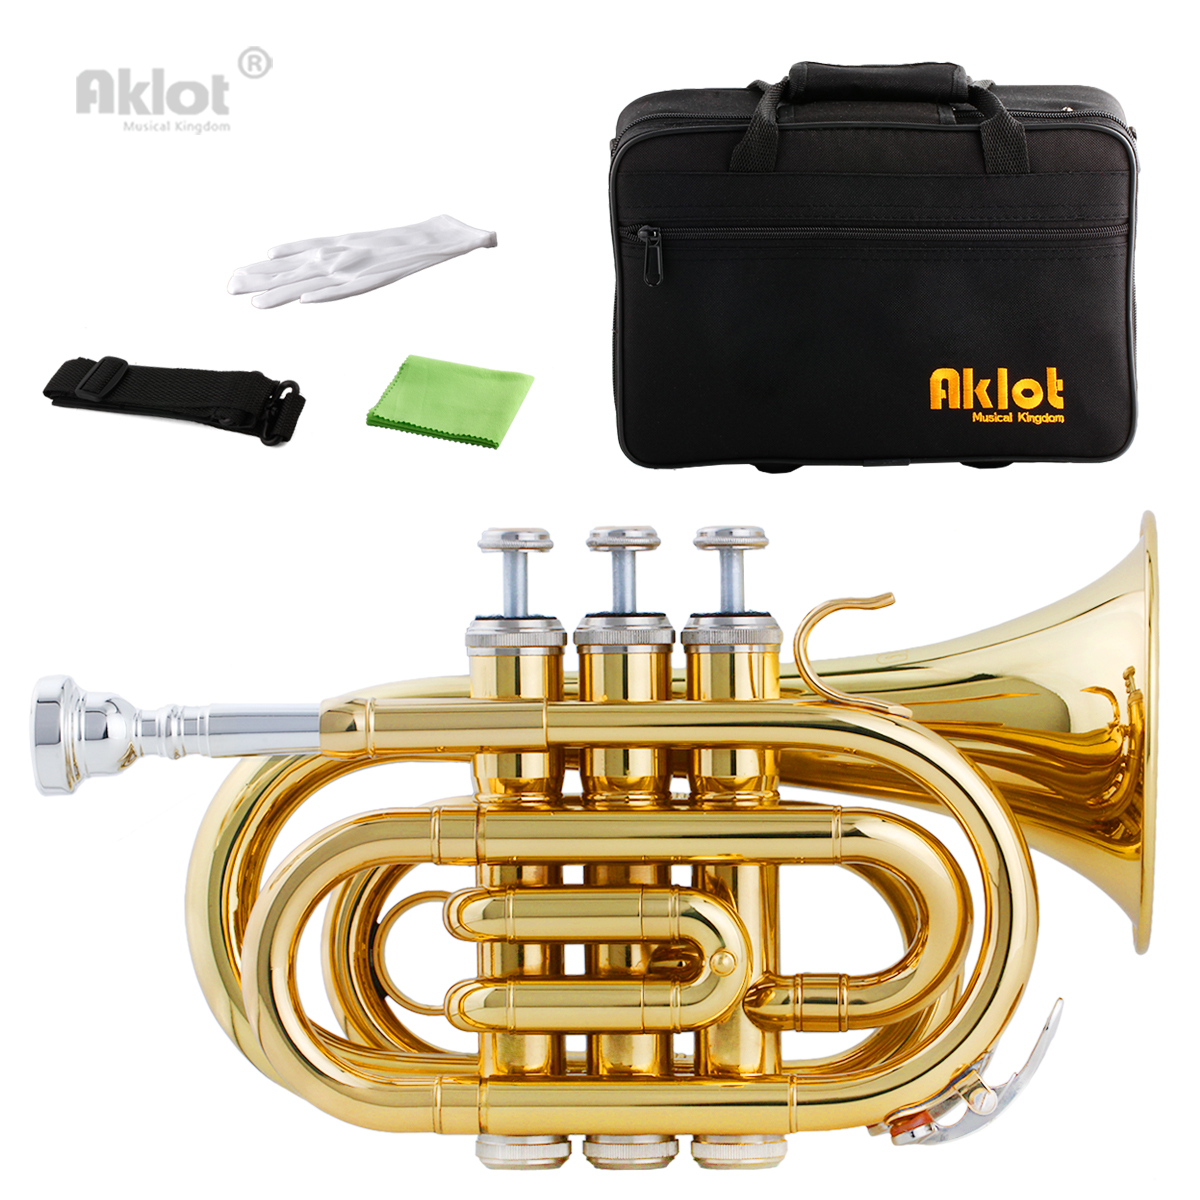 Aklot Bb Mini Pocket Trumpet 7C Silver Plated Mouthpiece Gold Lacquered Brass Body with Case